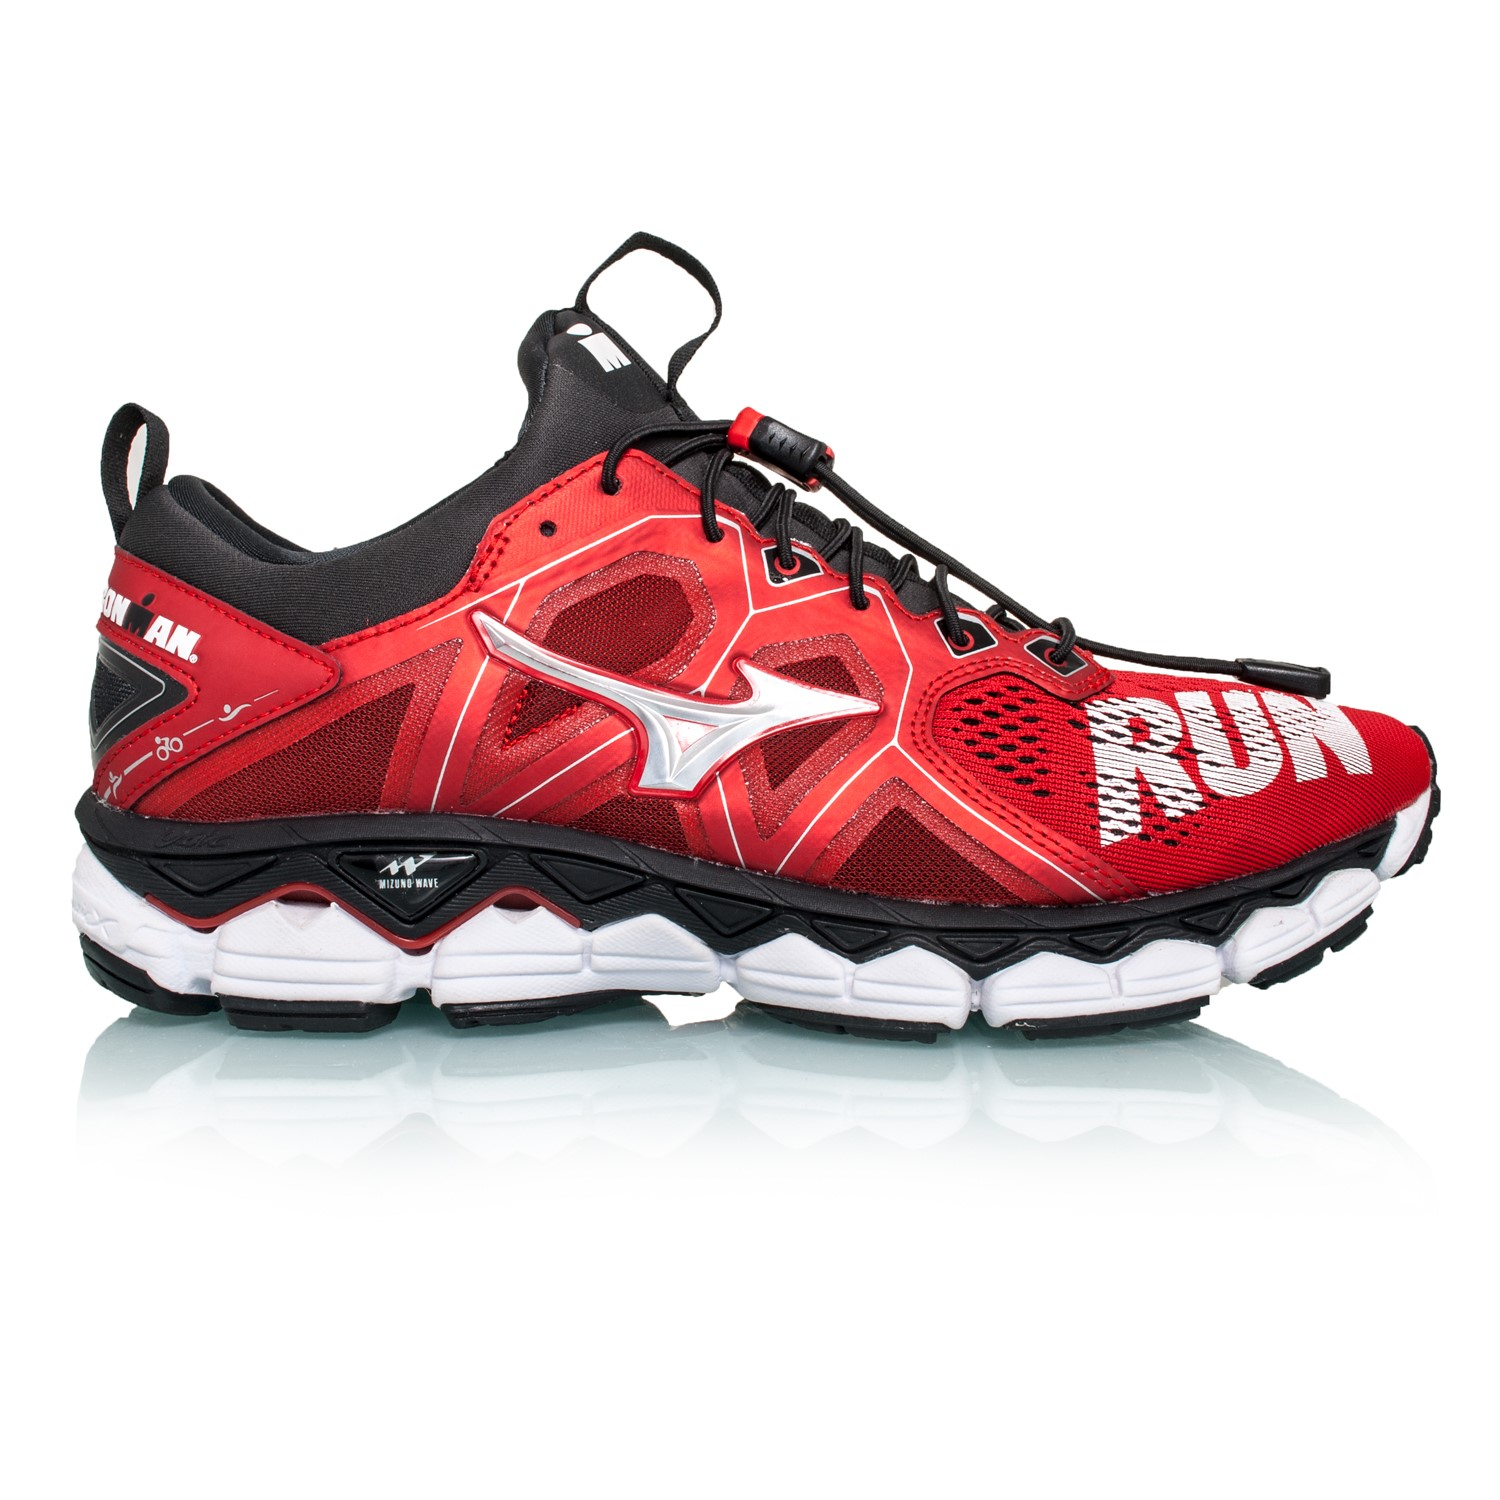 big sale 6ca02 e3e65 Mizuno Wave Sky 2 Tri IronMan Edition - Unisex Running Shoes - Red Silver